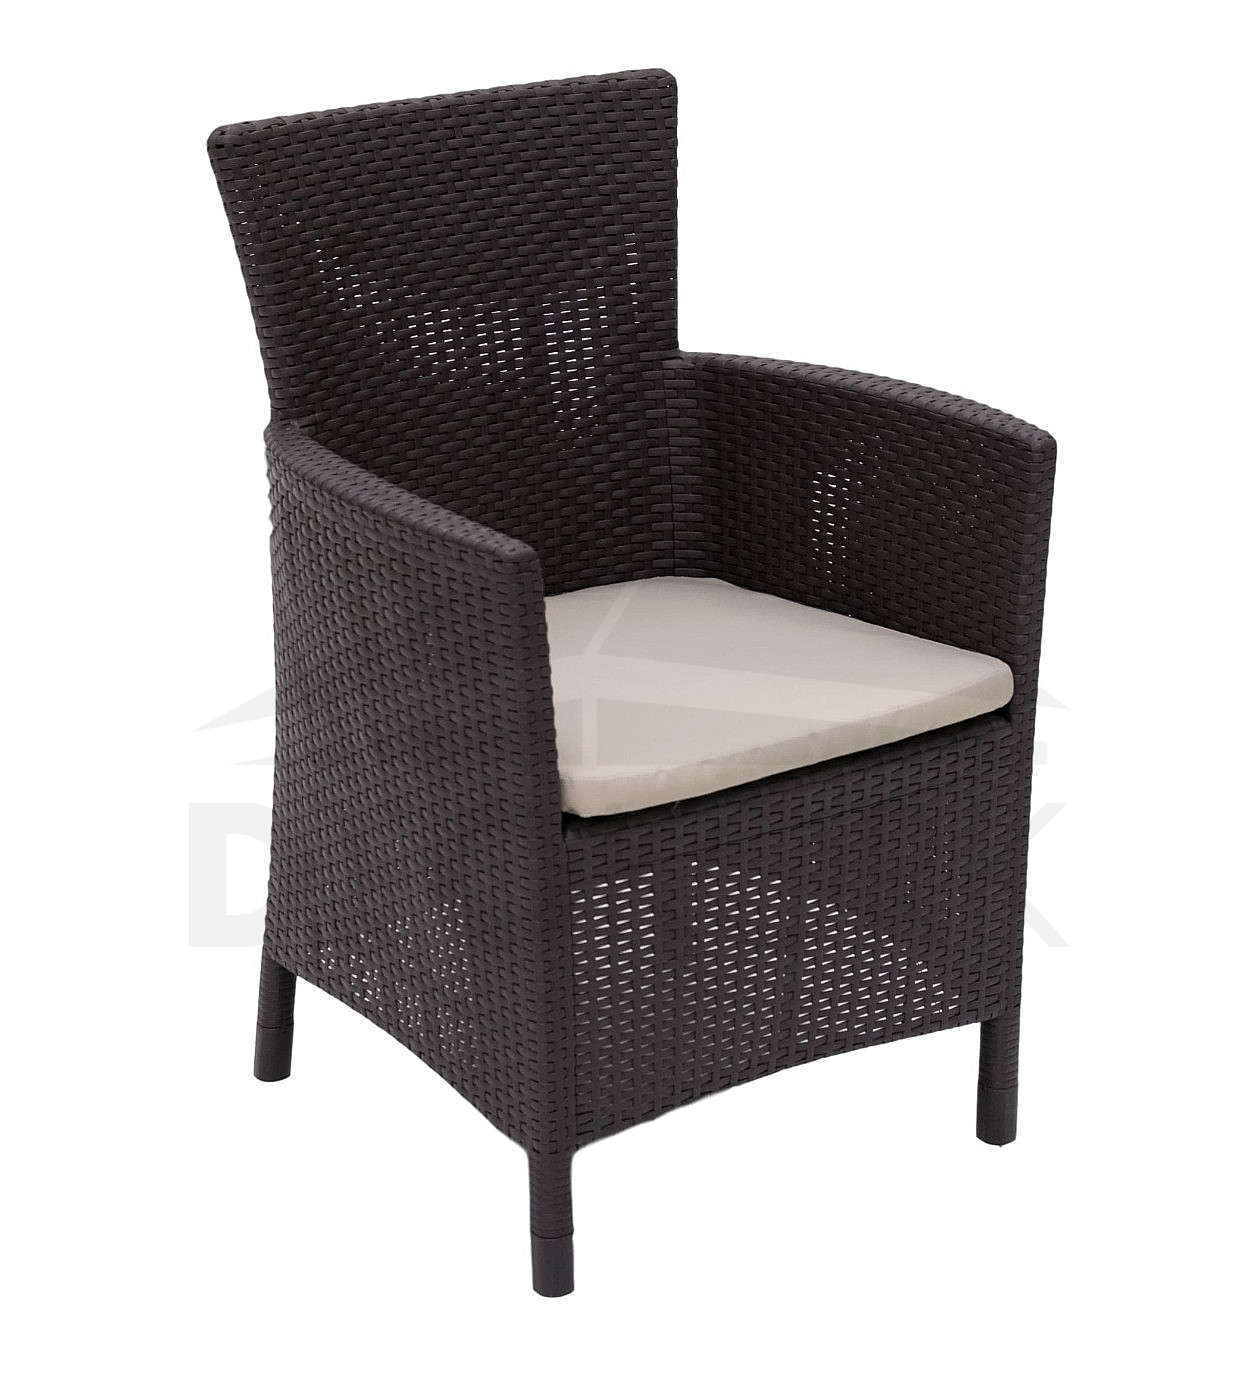 gartensessel aus polyrattan havana braun i. Black Bedroom Furniture Sets. Home Design Ideas